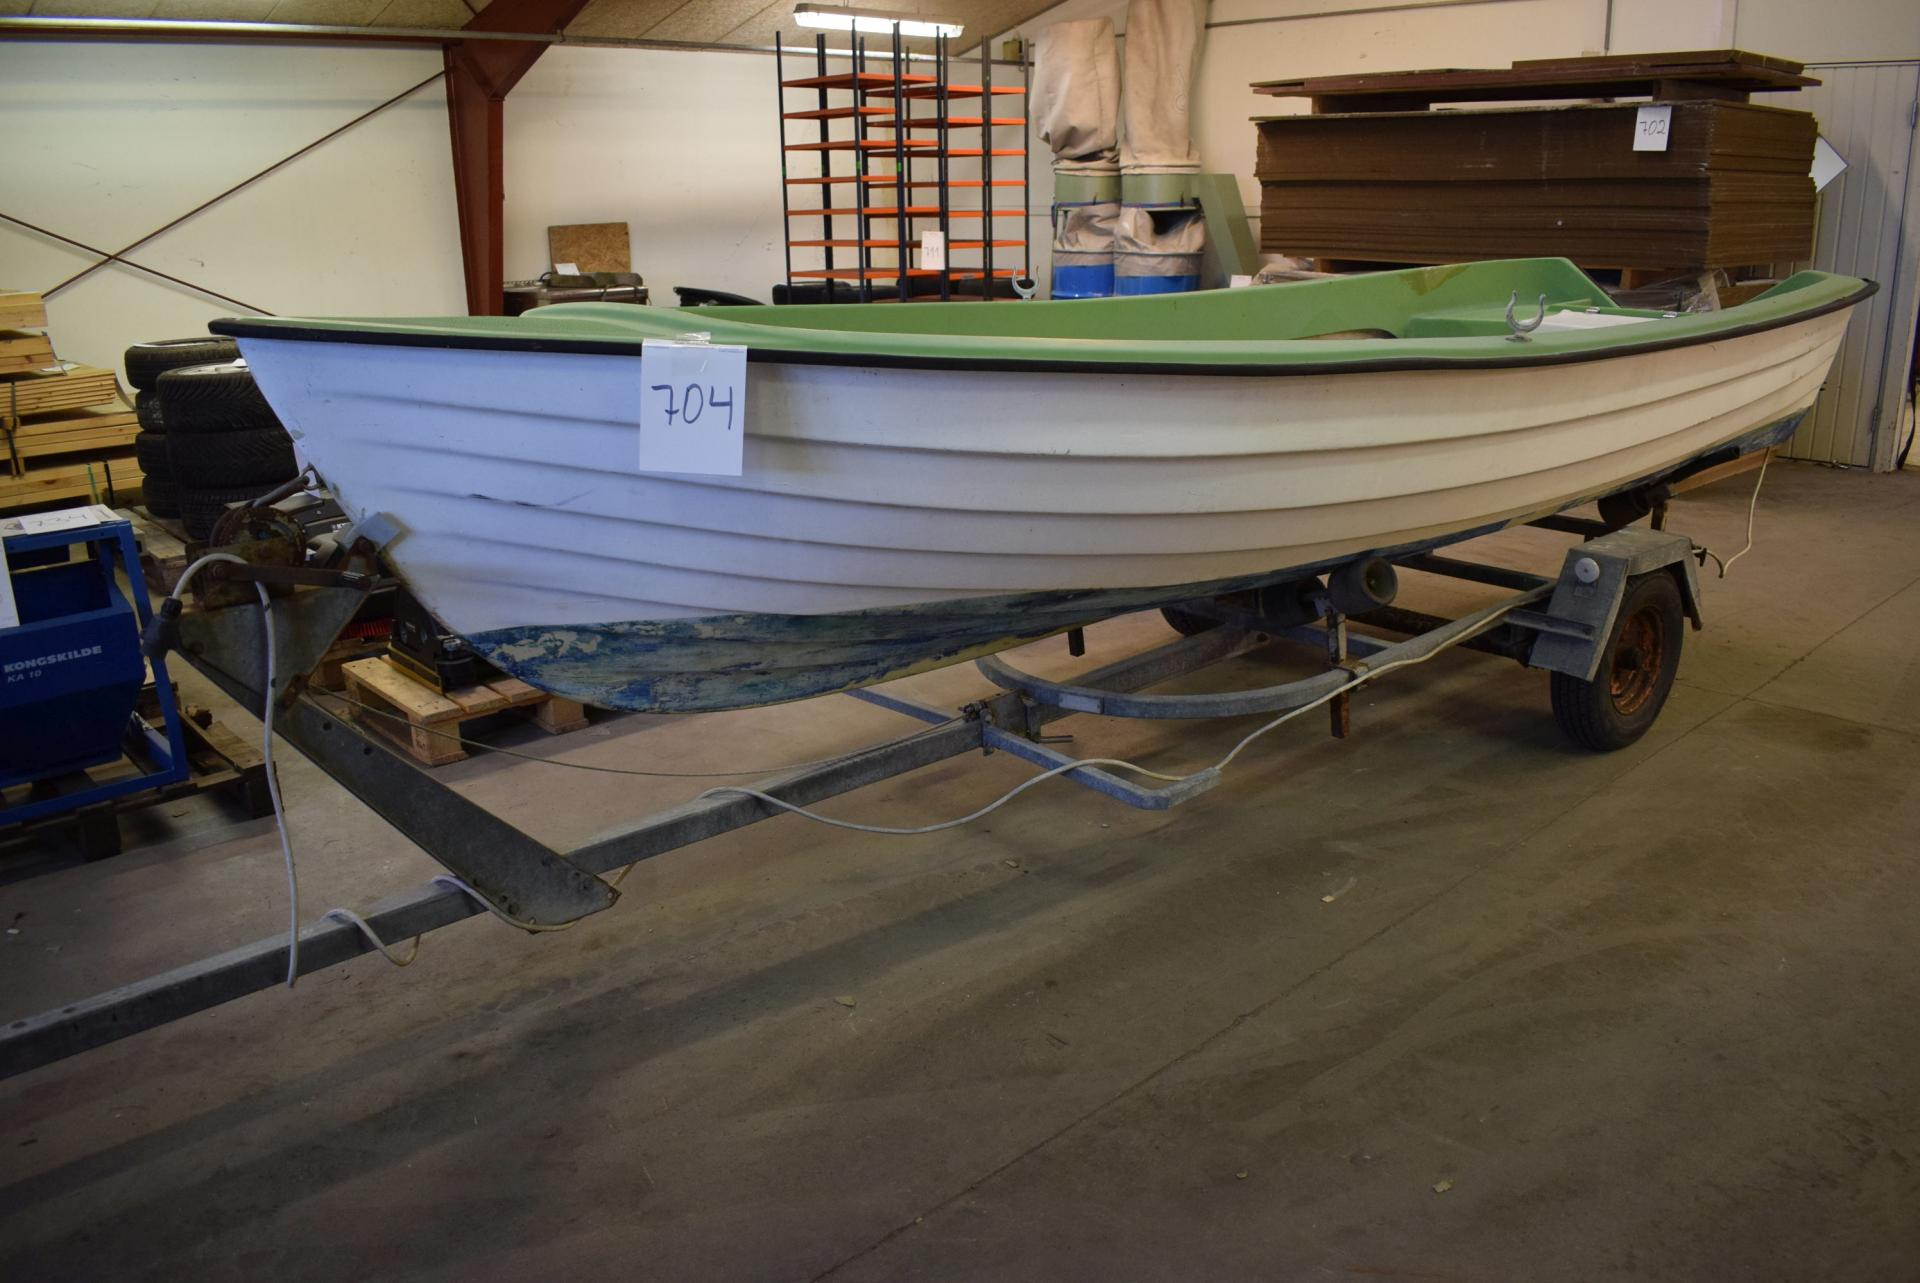 15 foot boat maximum motor size 10 hp diesel without for 16 foot aluminum boat motor size